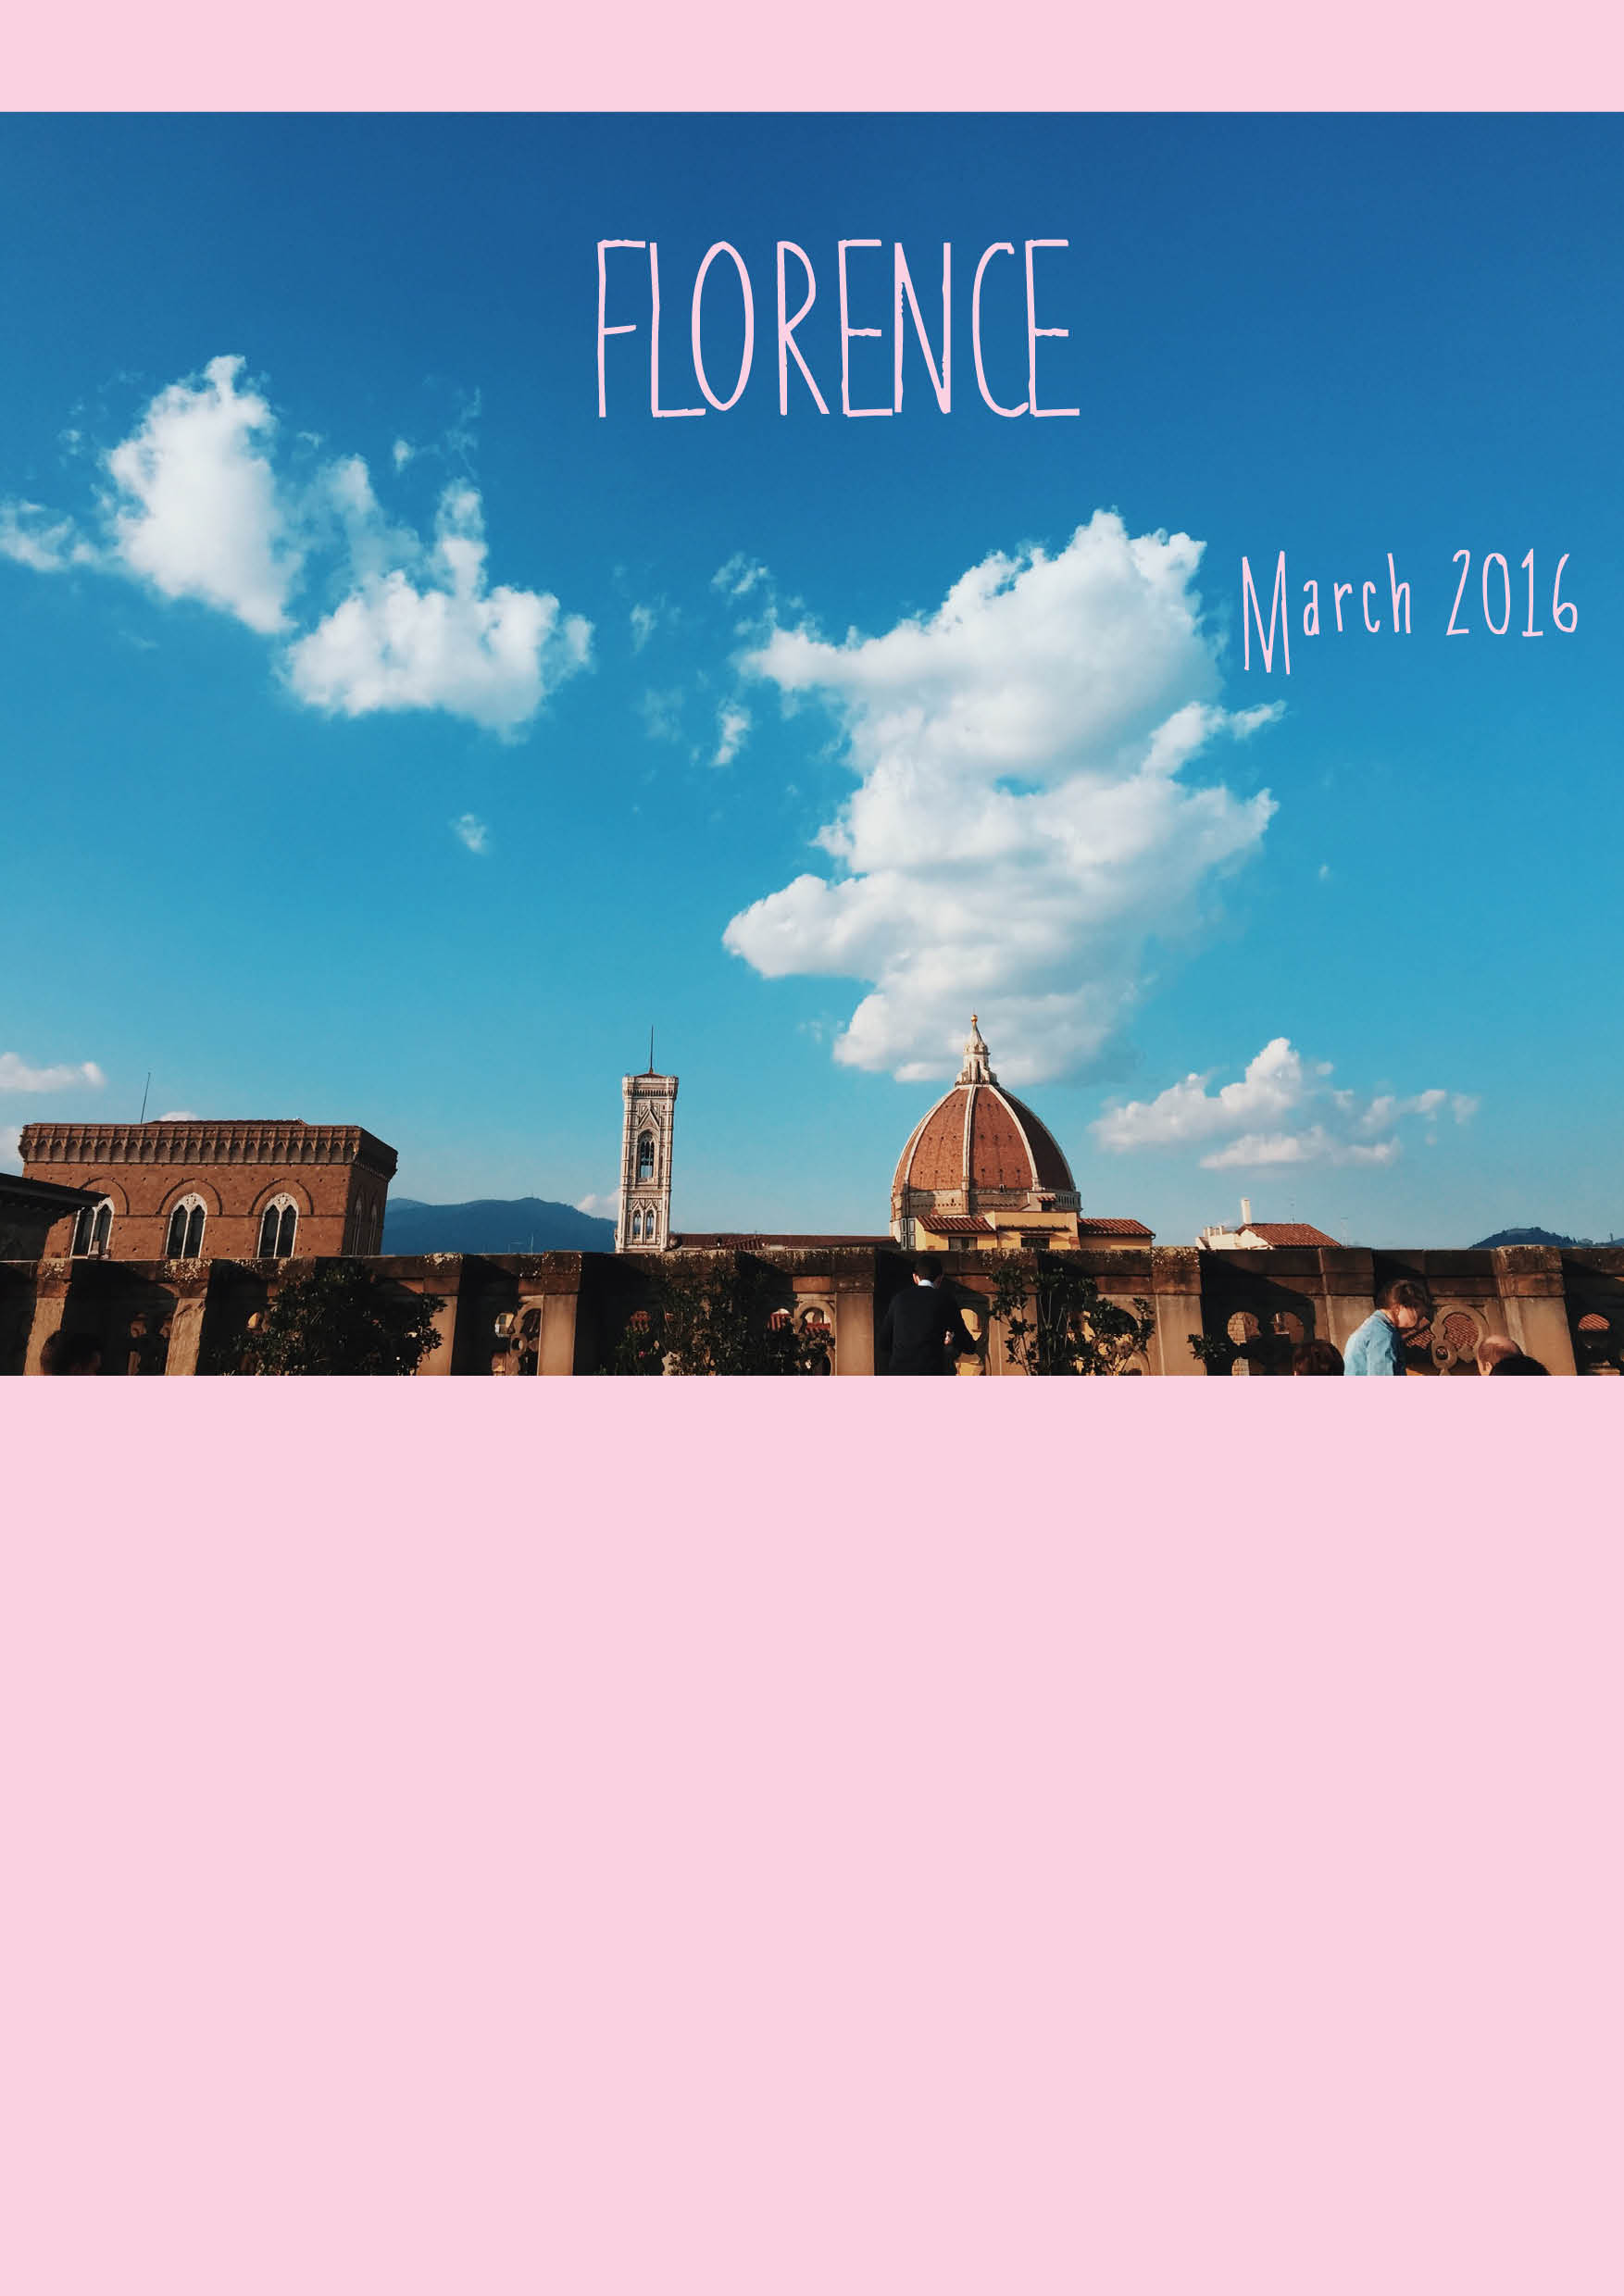 Florence March '16